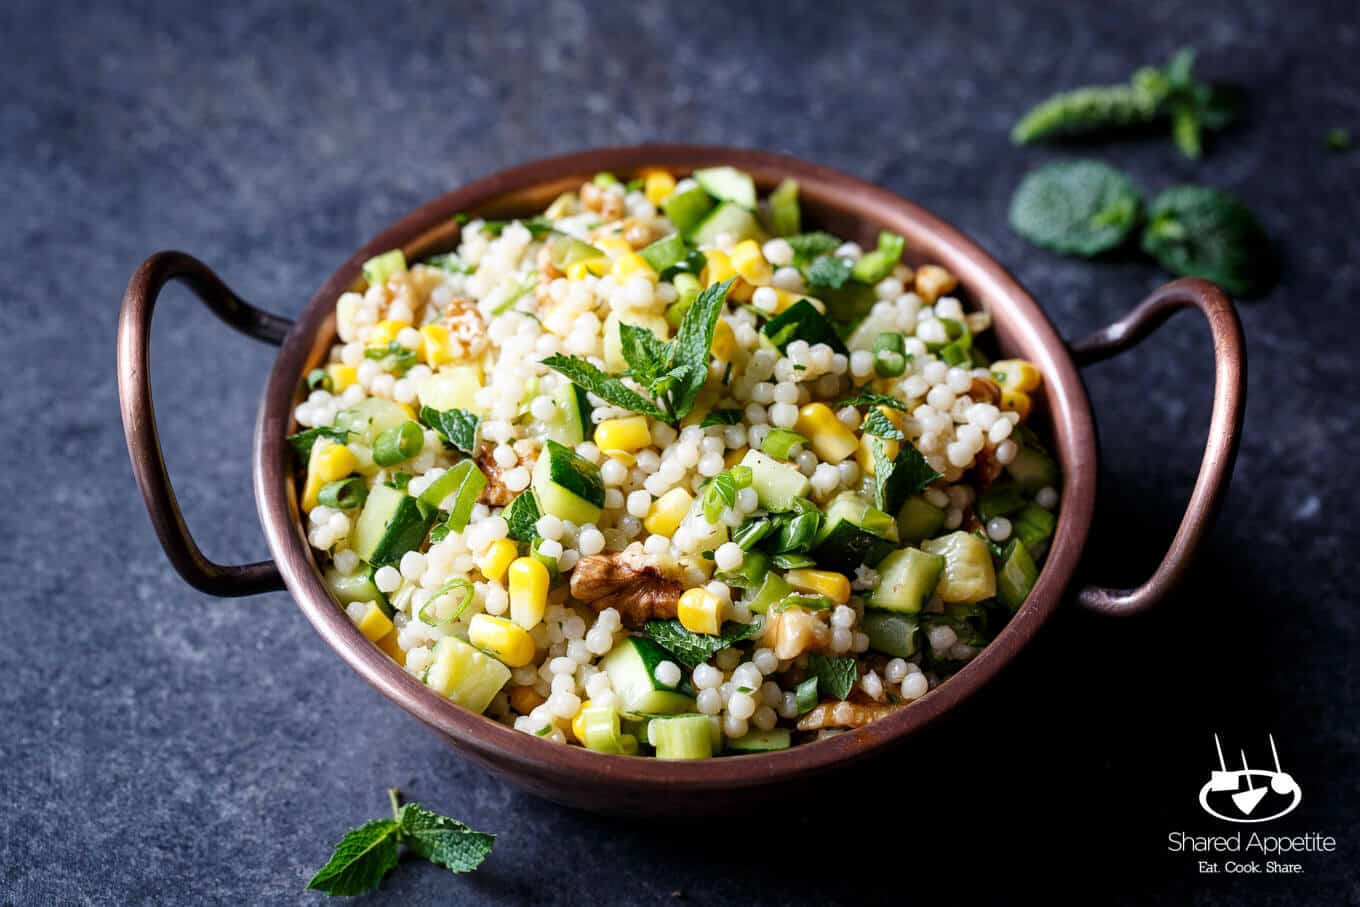 Pearl Couscous Salad with Zucchini, Corn, and Mint to serve as a side to Grilled Lamb Chops with Mint Chimichurri | sharedappetite.com